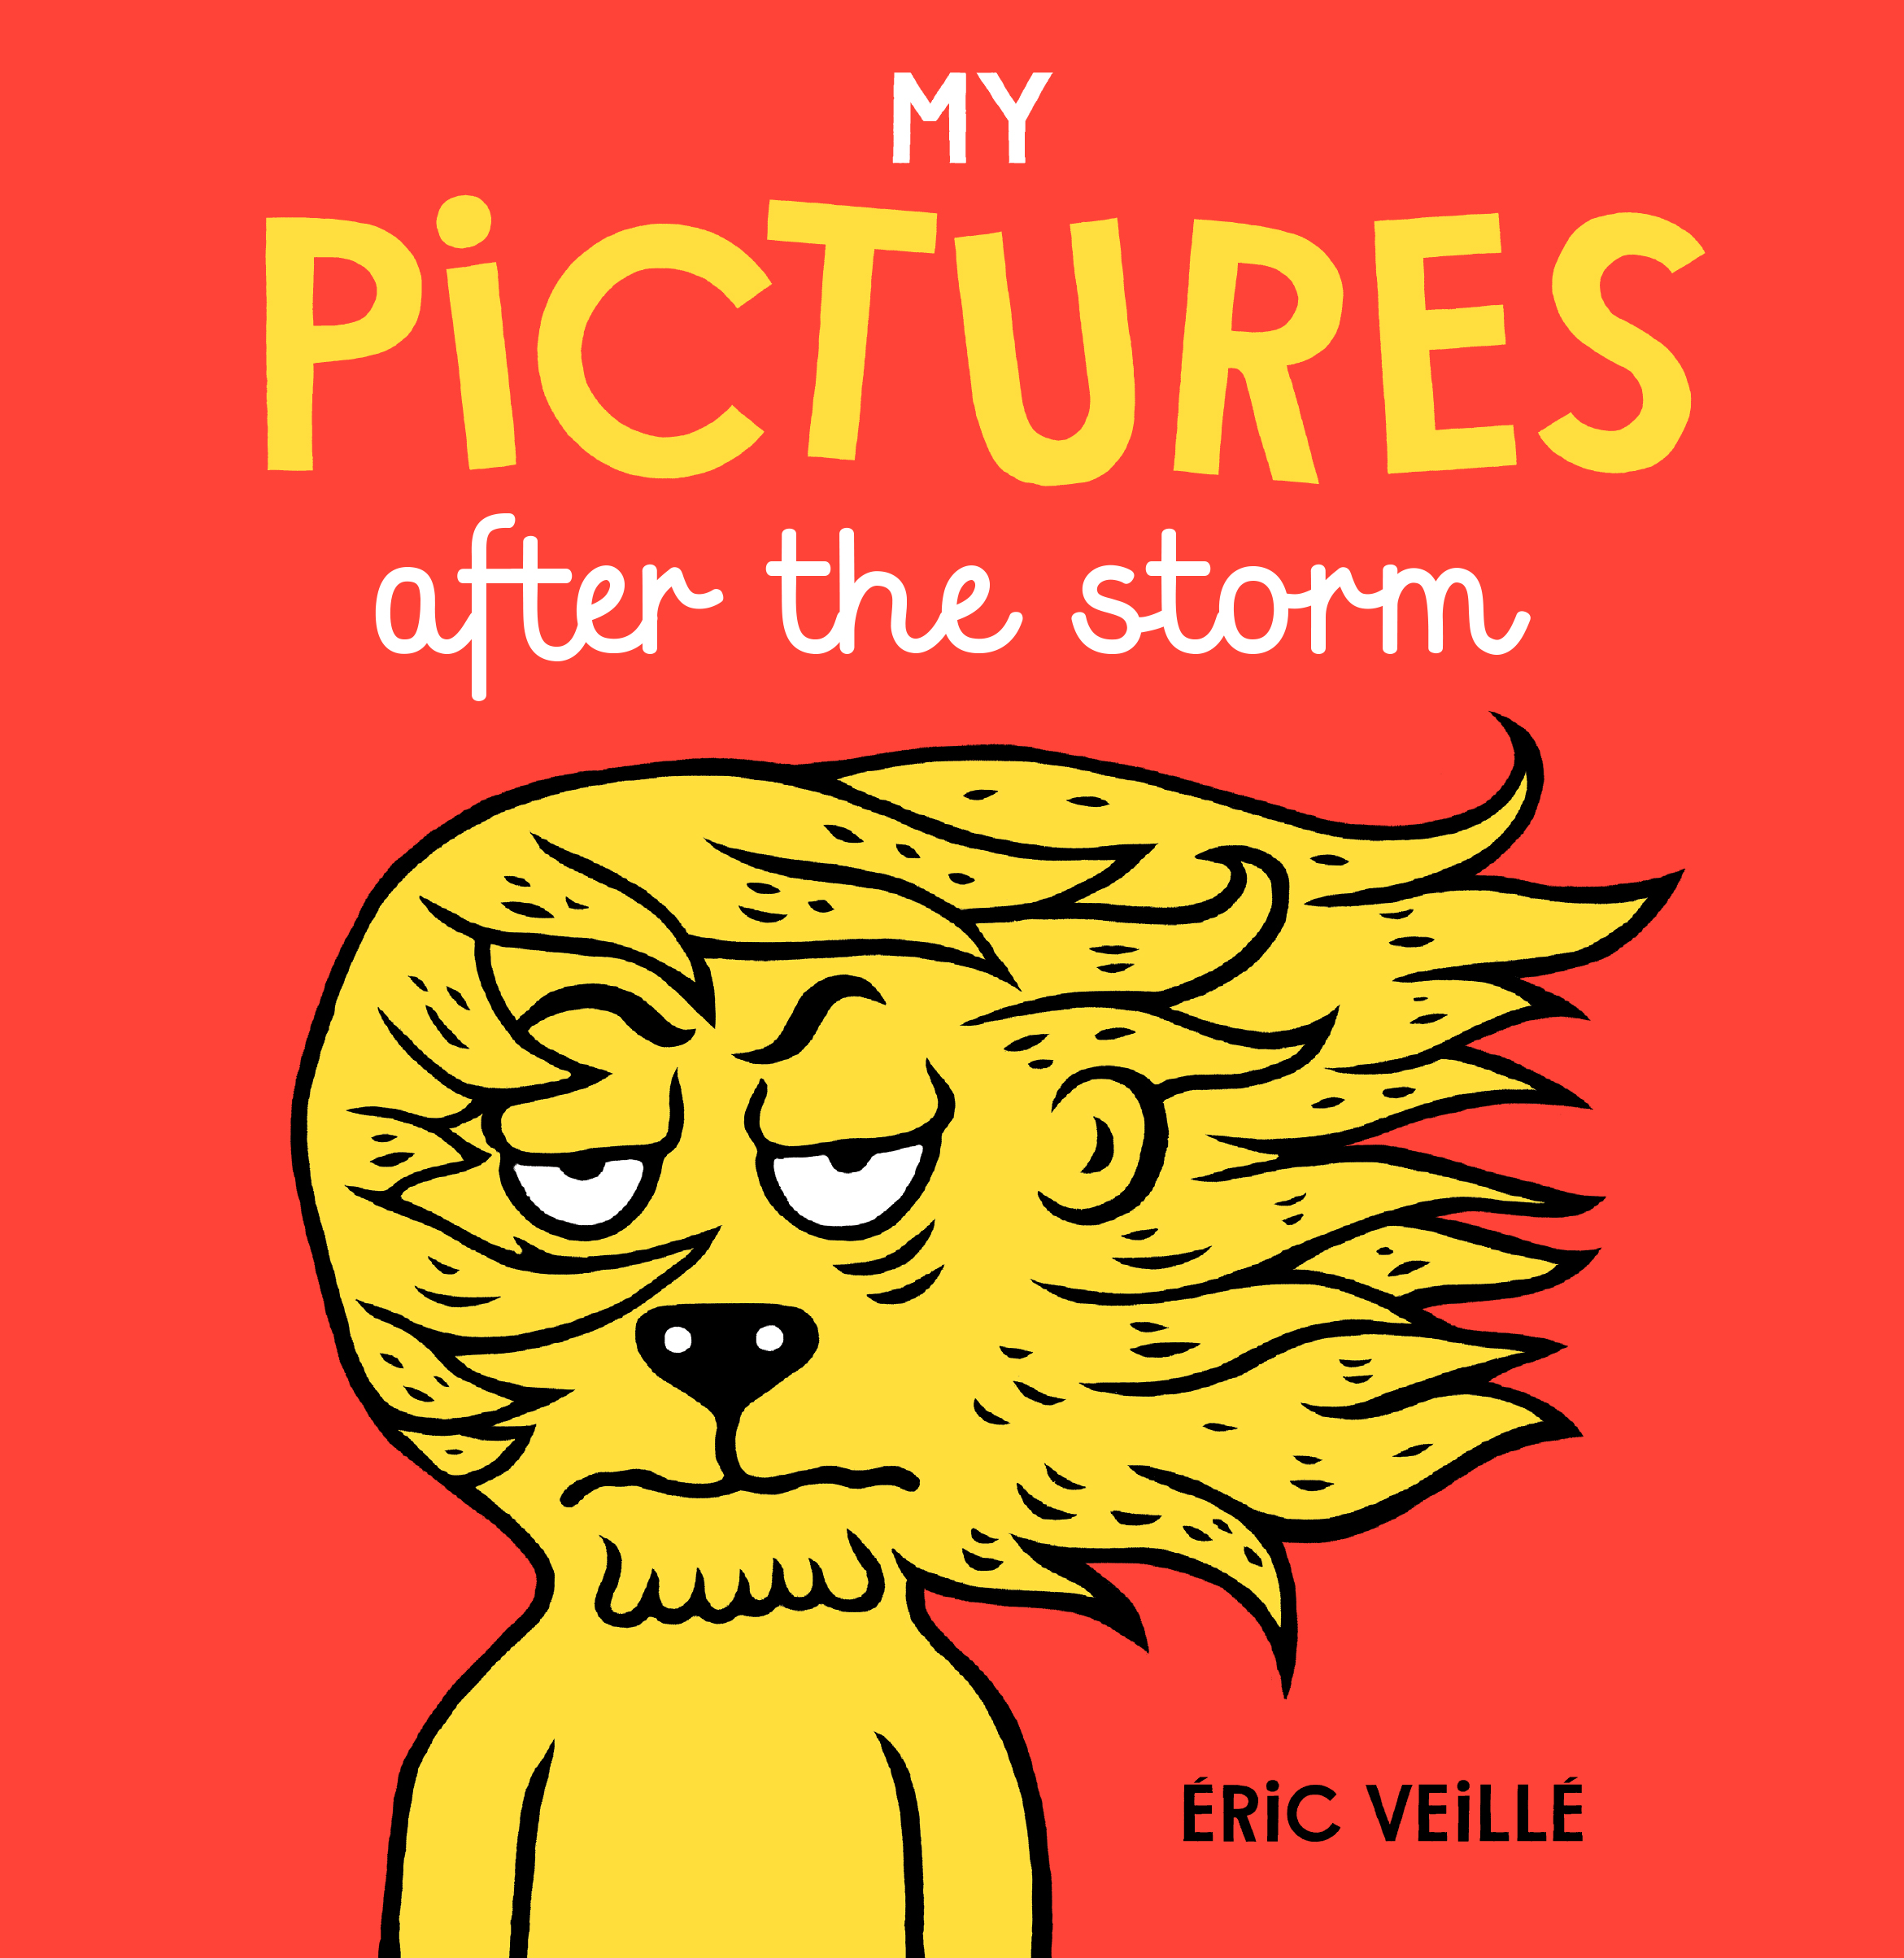 my pictures after the storm cover.JPG